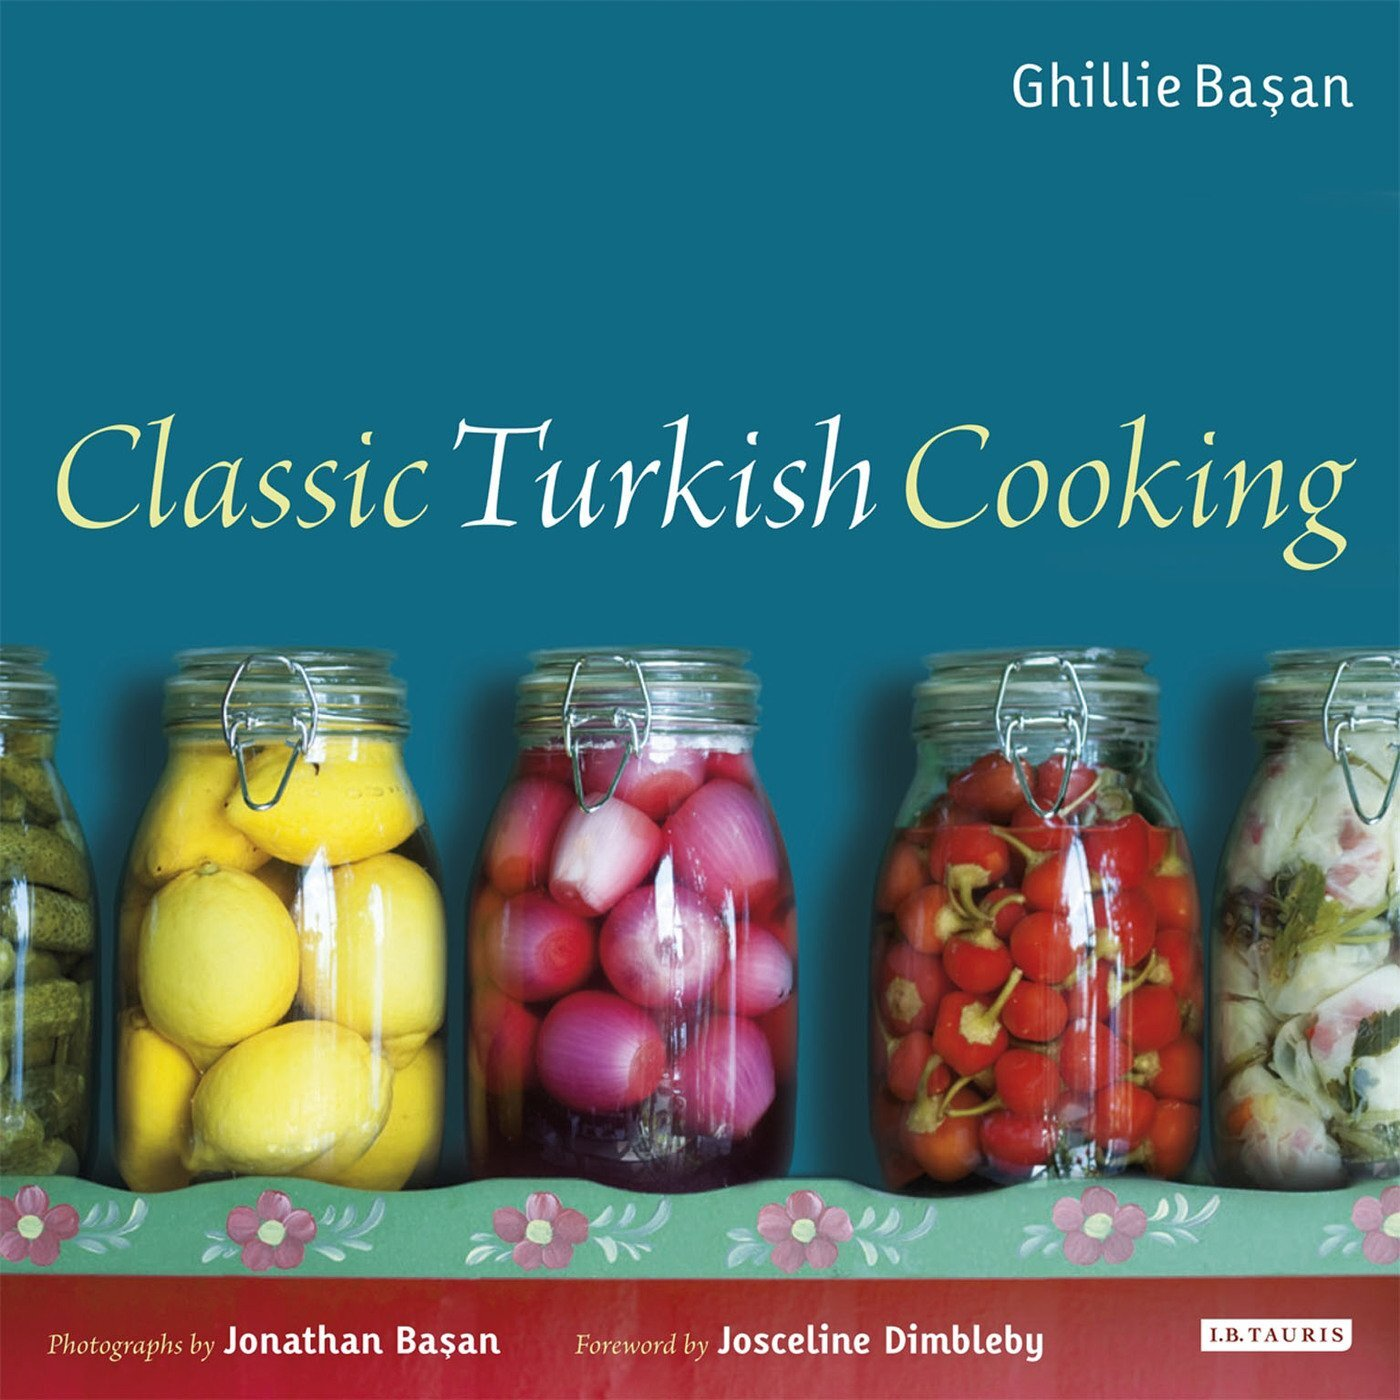 Classic Turkish Cooking by Ghillie BAsan